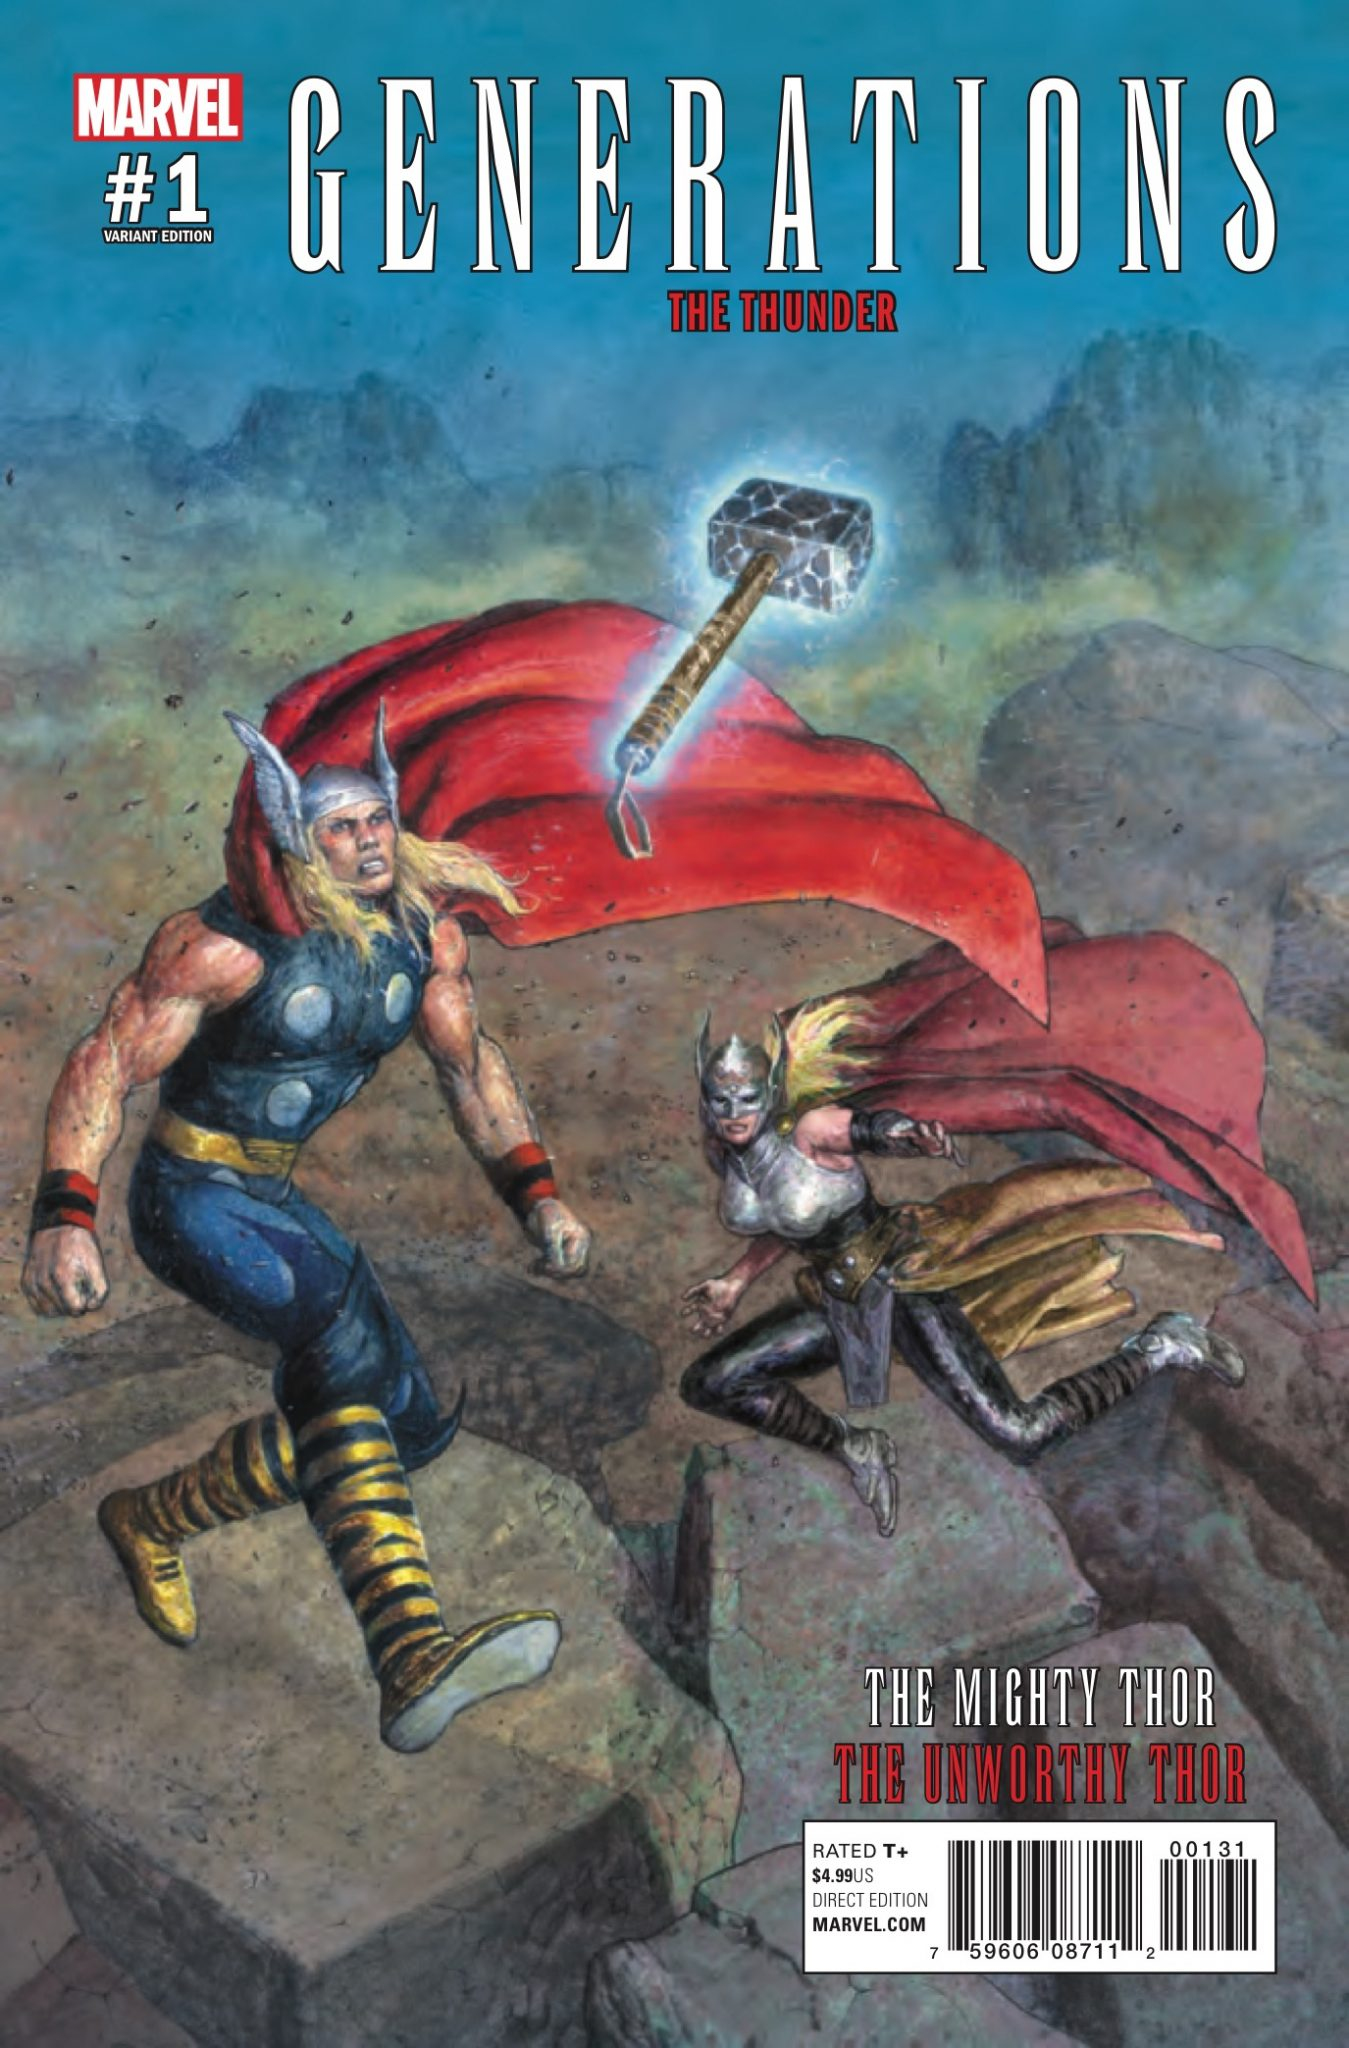 Generations: Unworthy Thor & The Mighty Thor #1 Review